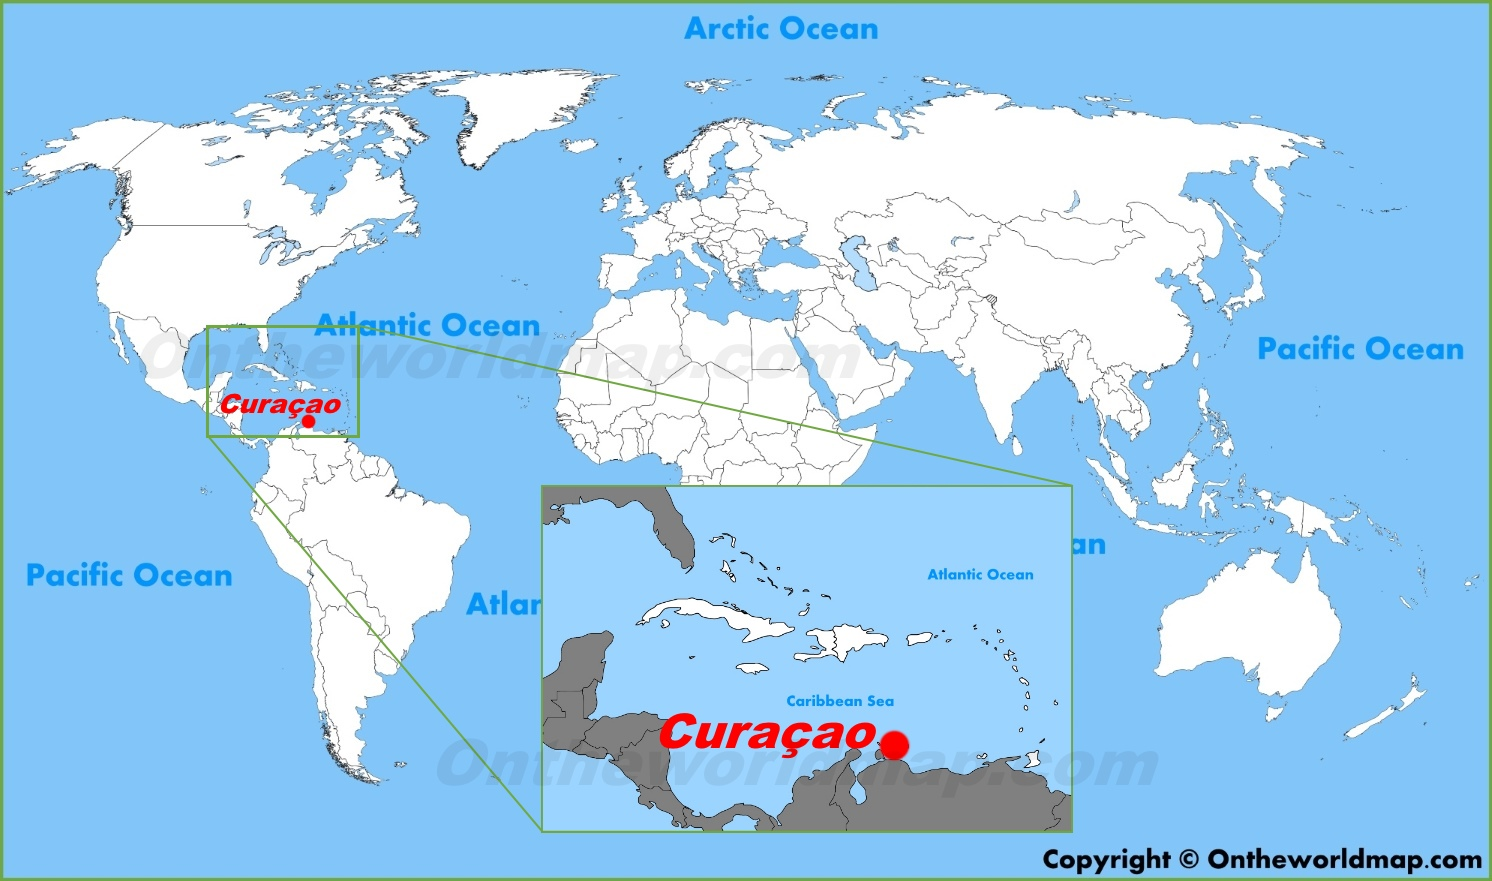 Where Is Curacao Located On The Map Curaçao location on the World Map